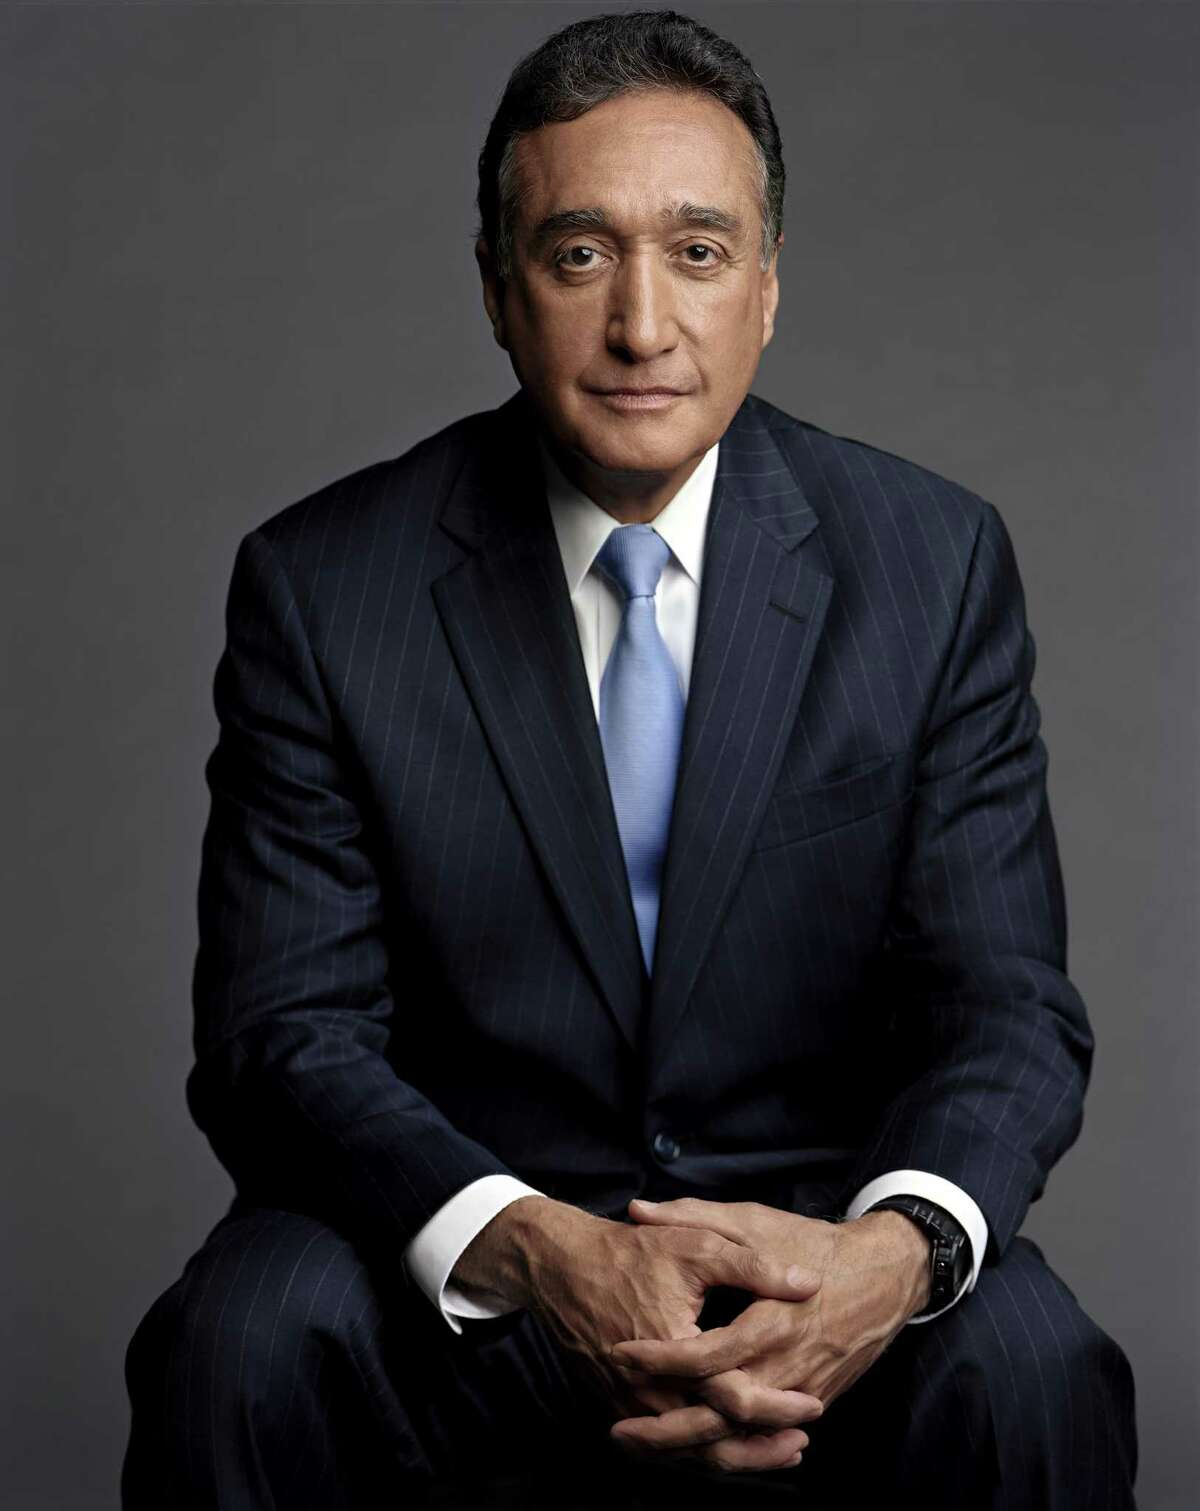 A portrait of former San Antonio Mayor Henry Cisneros, one of the authors of